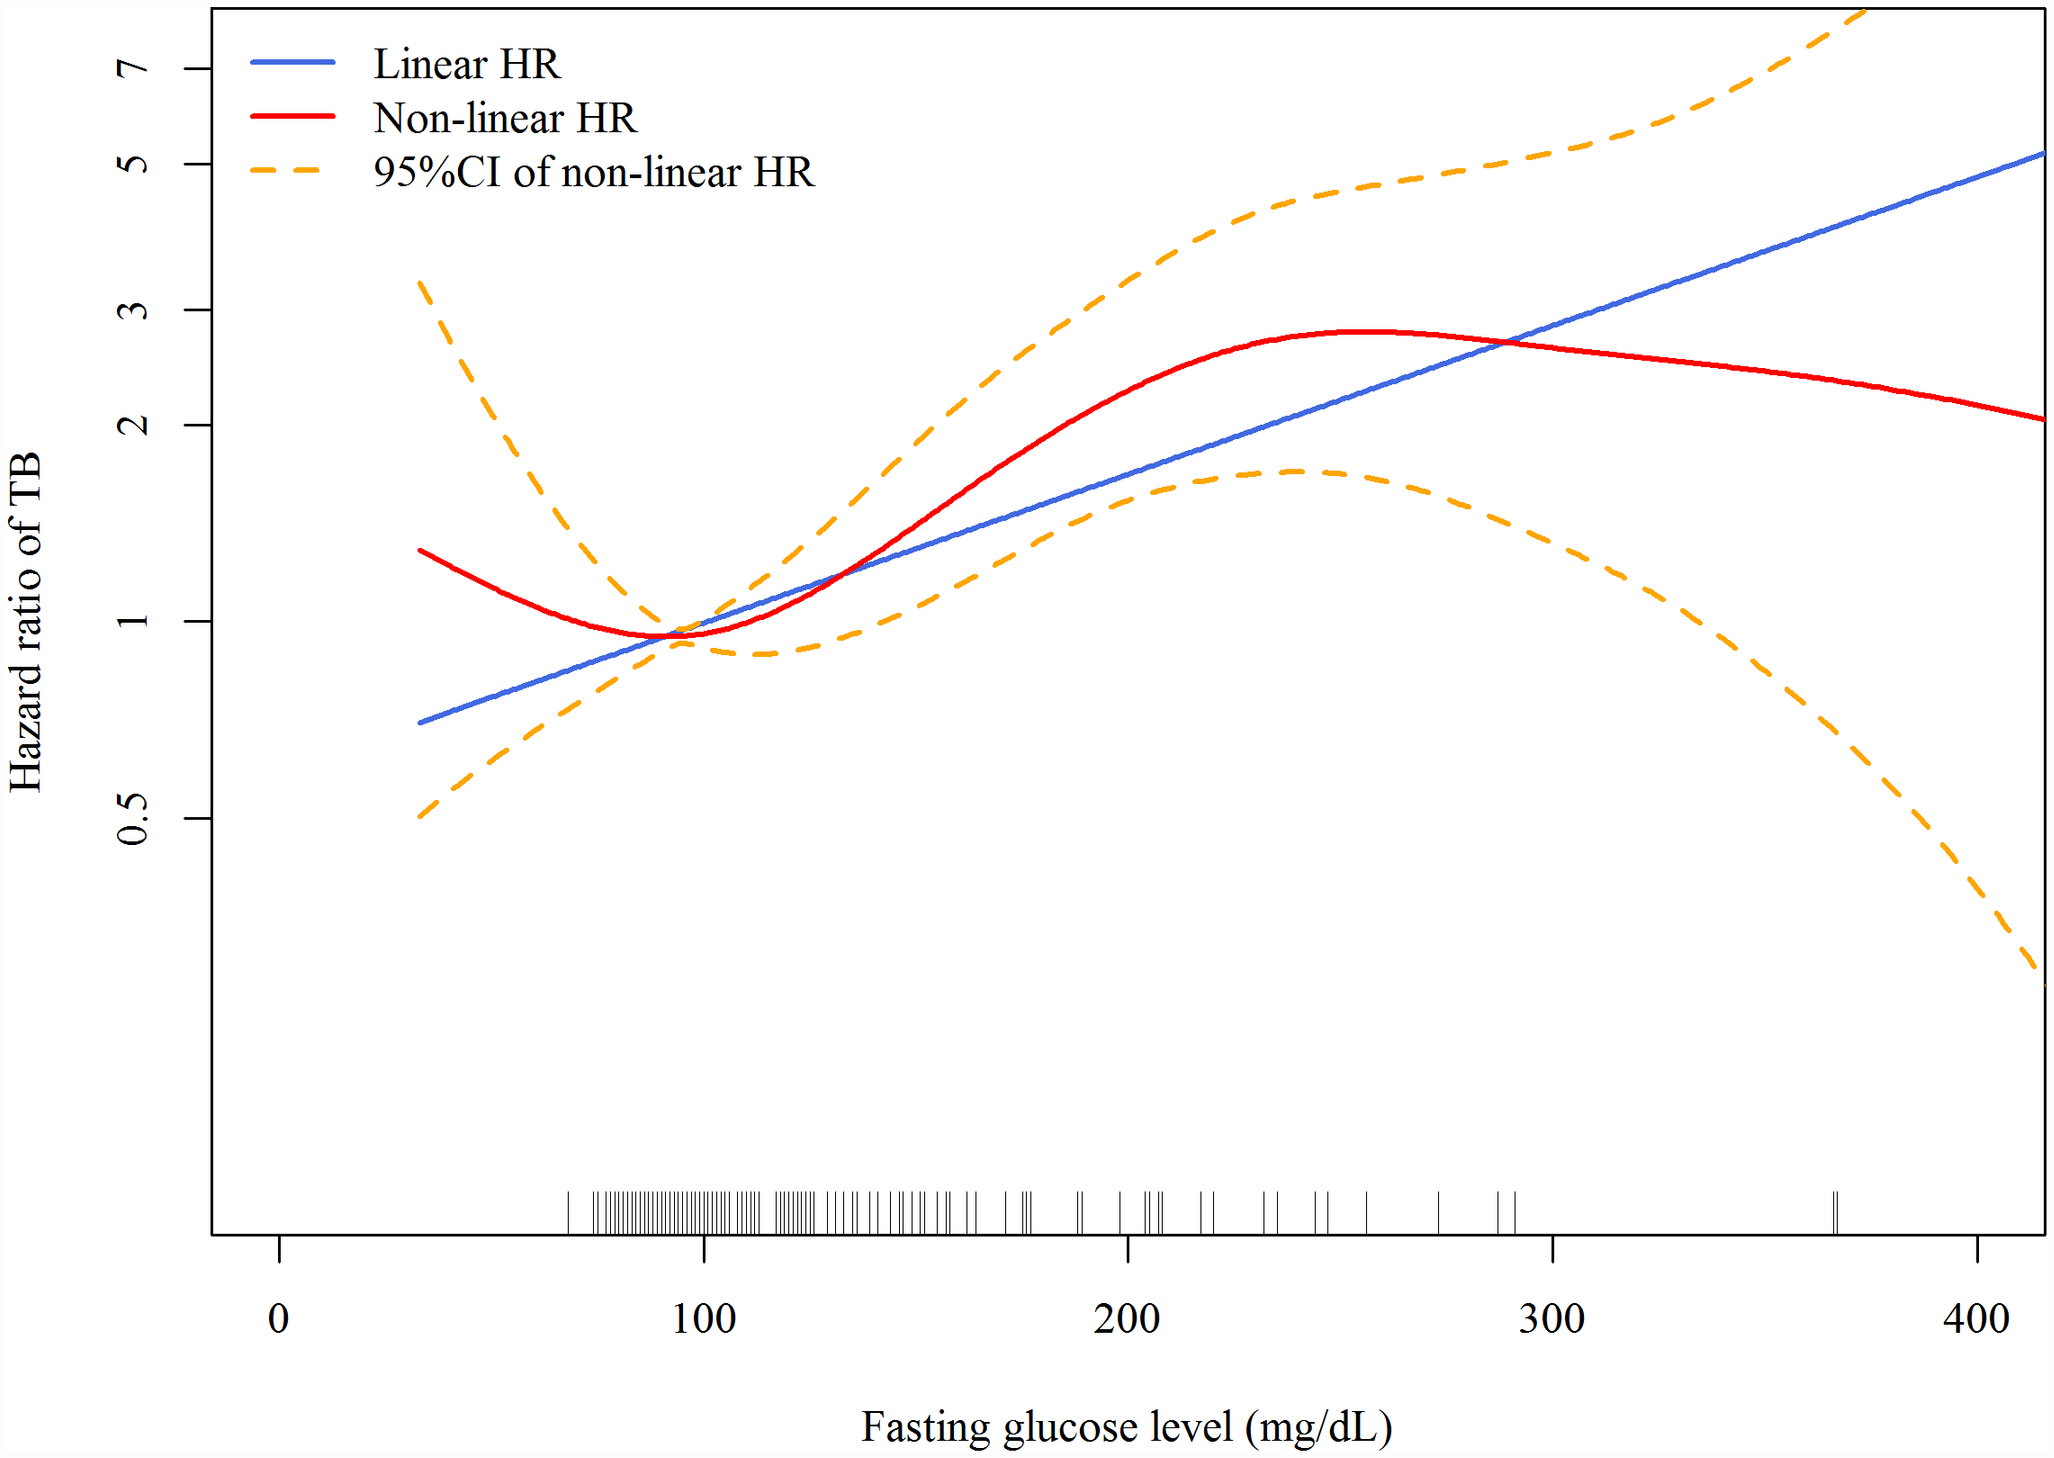 Dose-response curves for fasting plasma glucose and risk of incident tuberculosis in the Cox proportional hazards model.